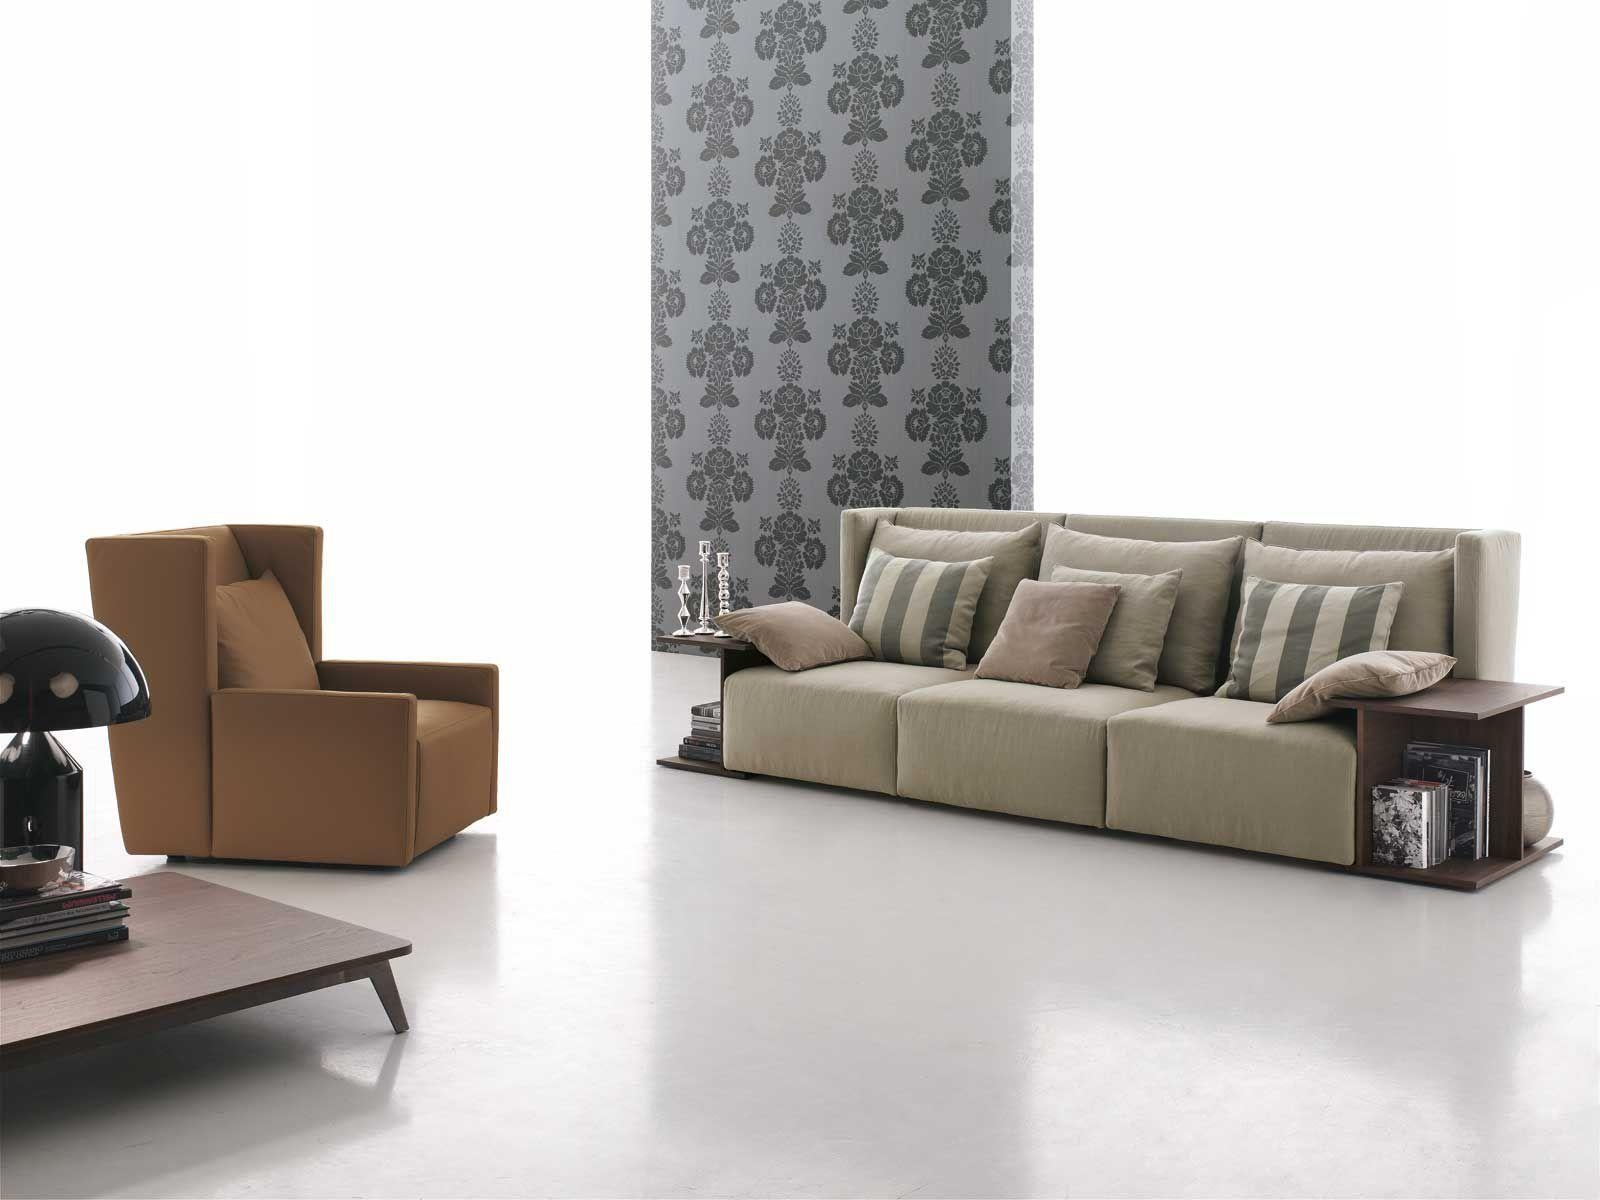 Modular Sofa / Contemporary / Fabric / 3 Seater – Club – Gruppo With Regard To Contemporary Fabric Sofas (Image 15 of 20)